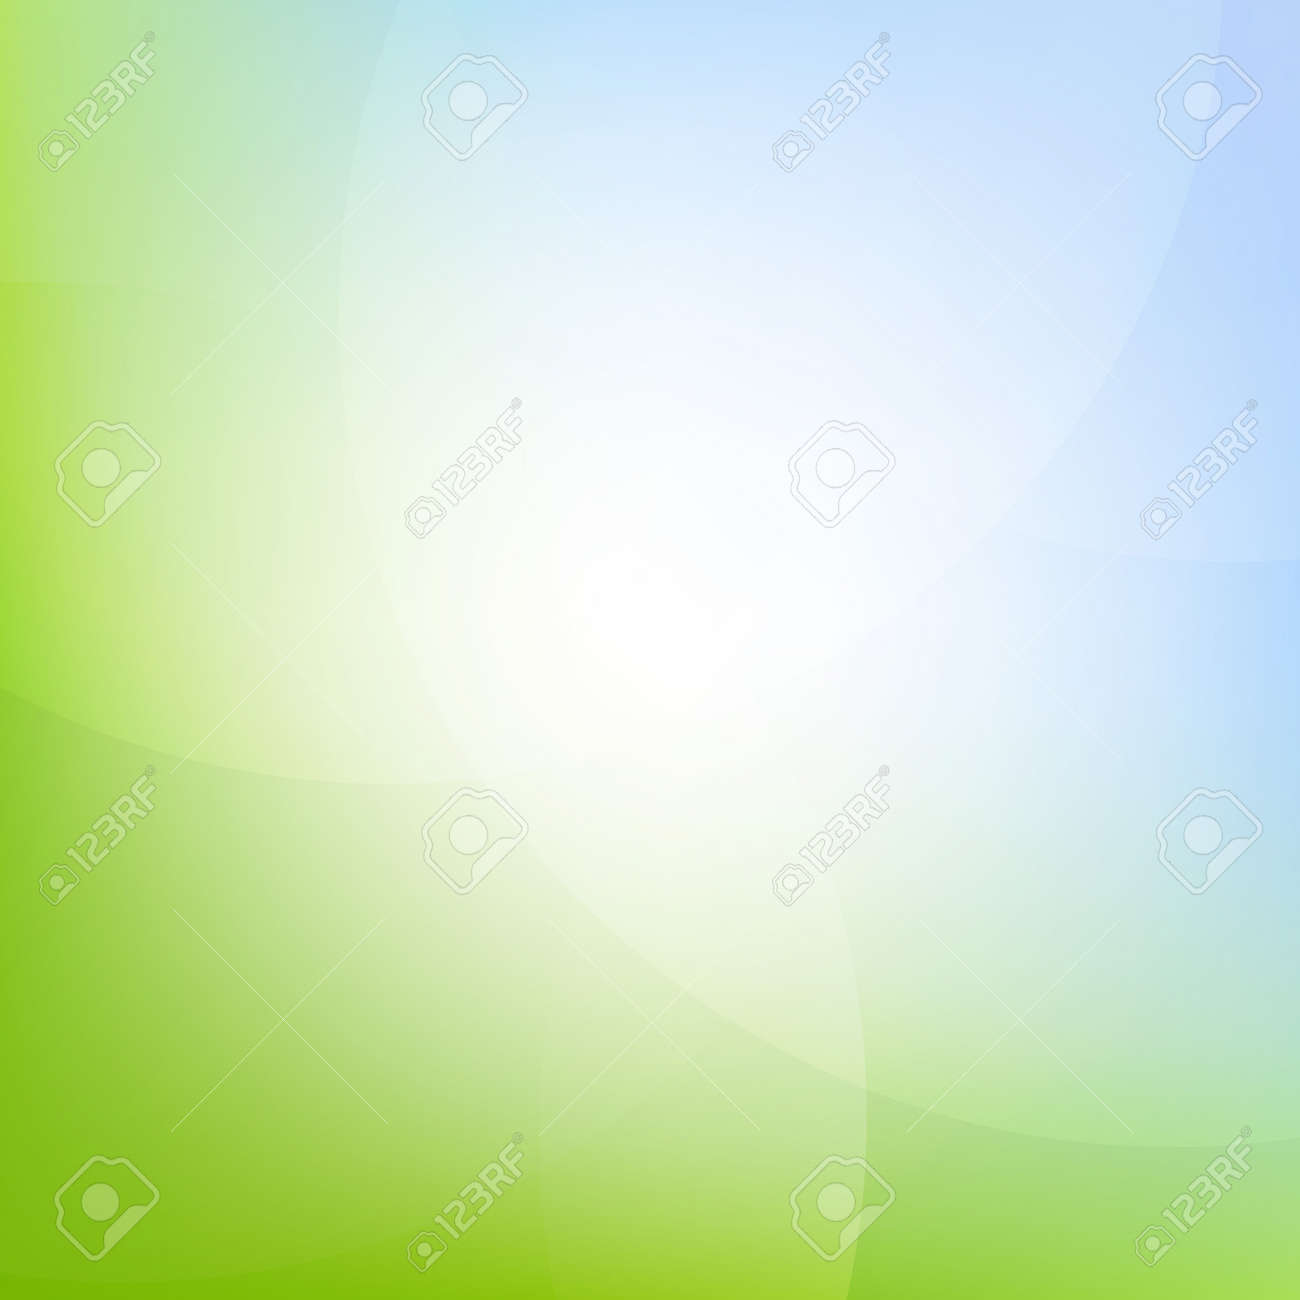 Green And Blue Background With Gradient Mesh, Vector Illustration - 56871614